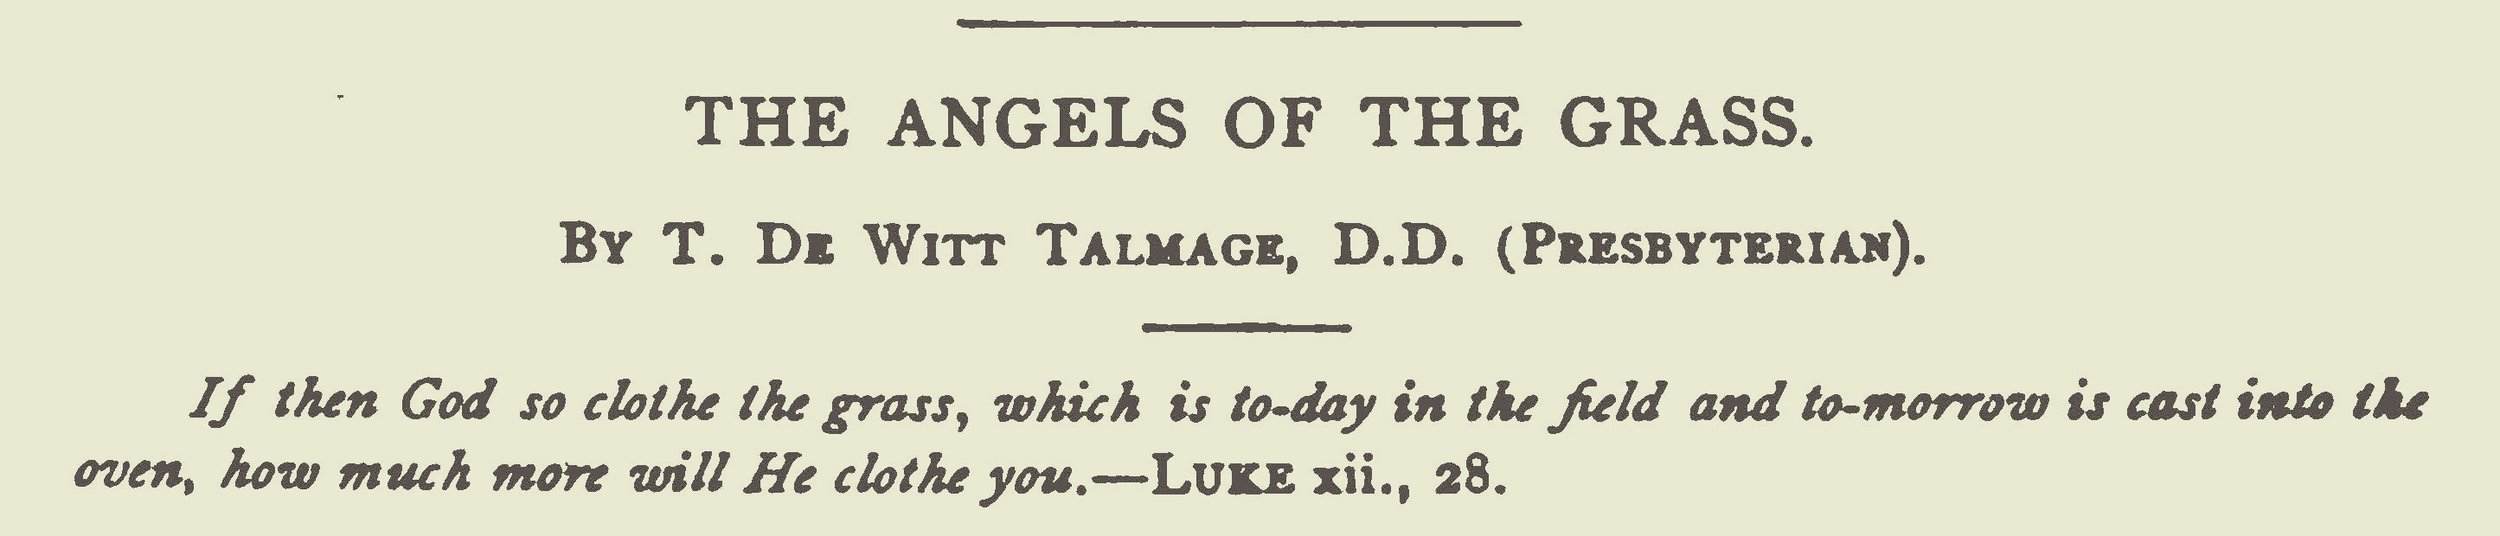 Talmage, Thomas De Witt, The Angels of the Grass Title Page.jpg